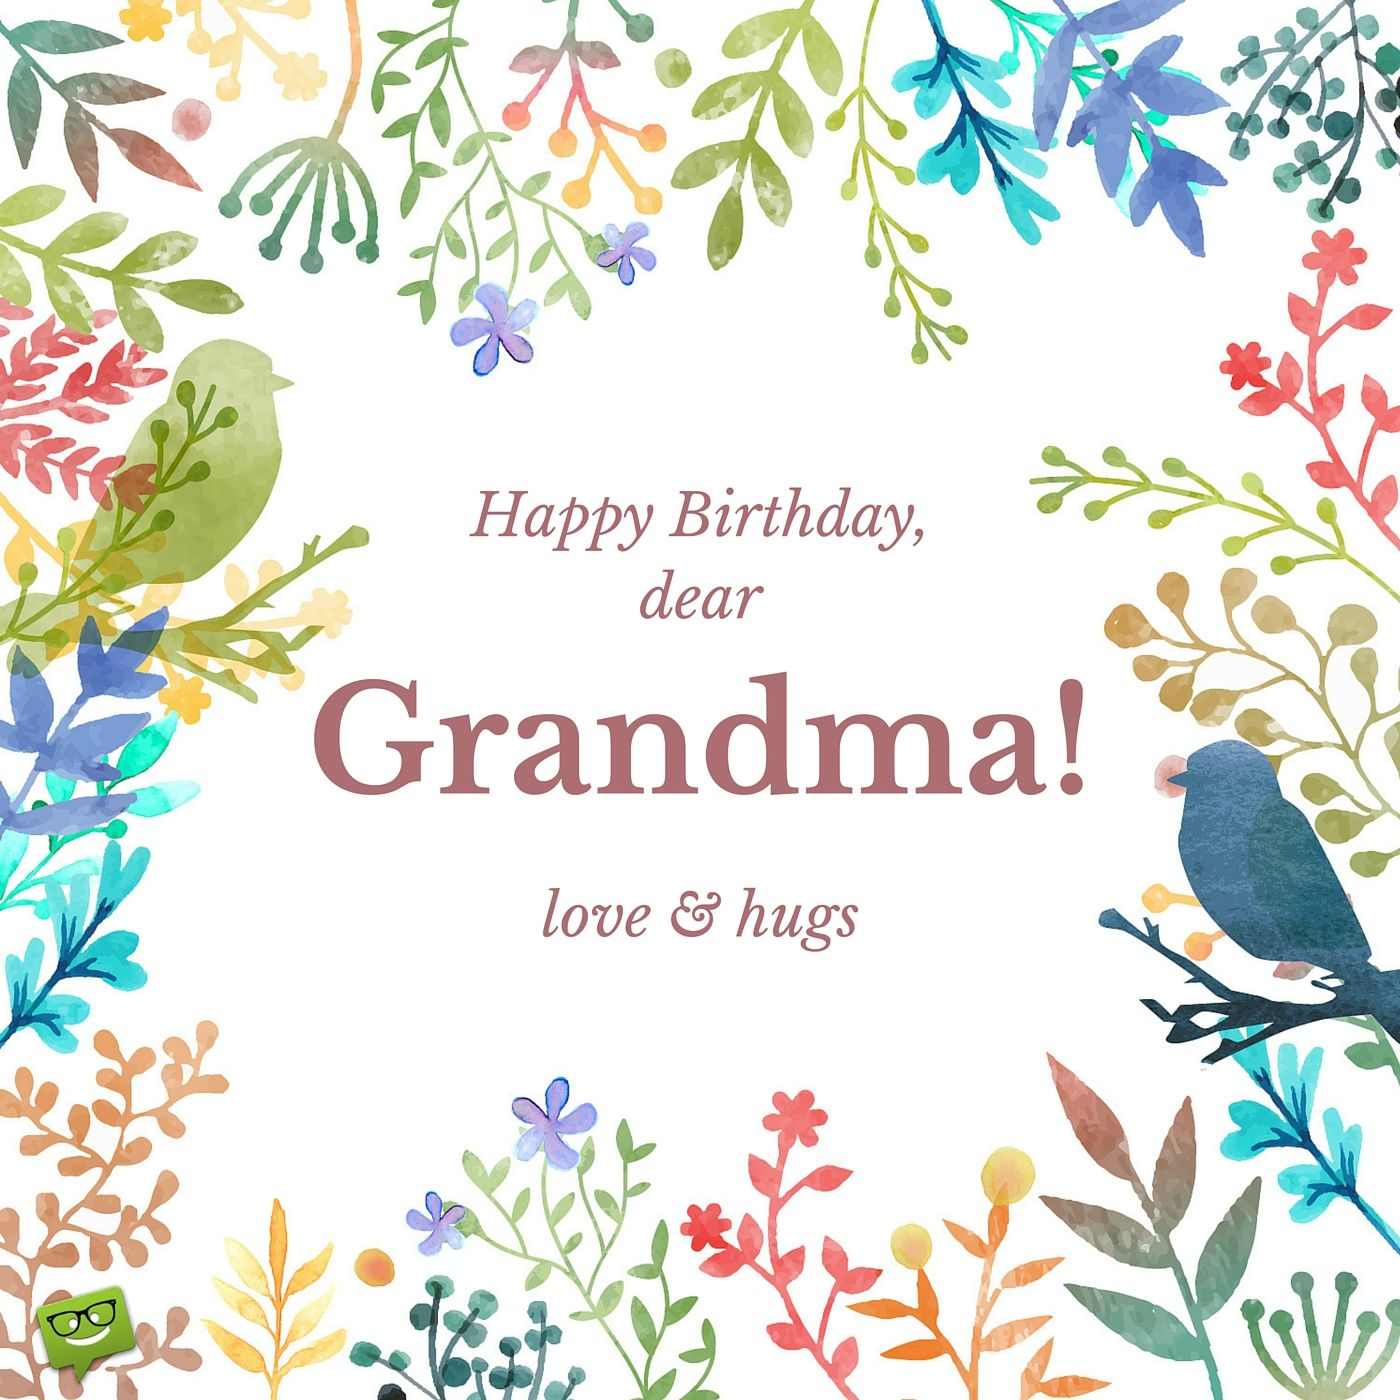 Happy Birthday Dear Grandma Love And Hugs In A Frame Of Hand Drawn